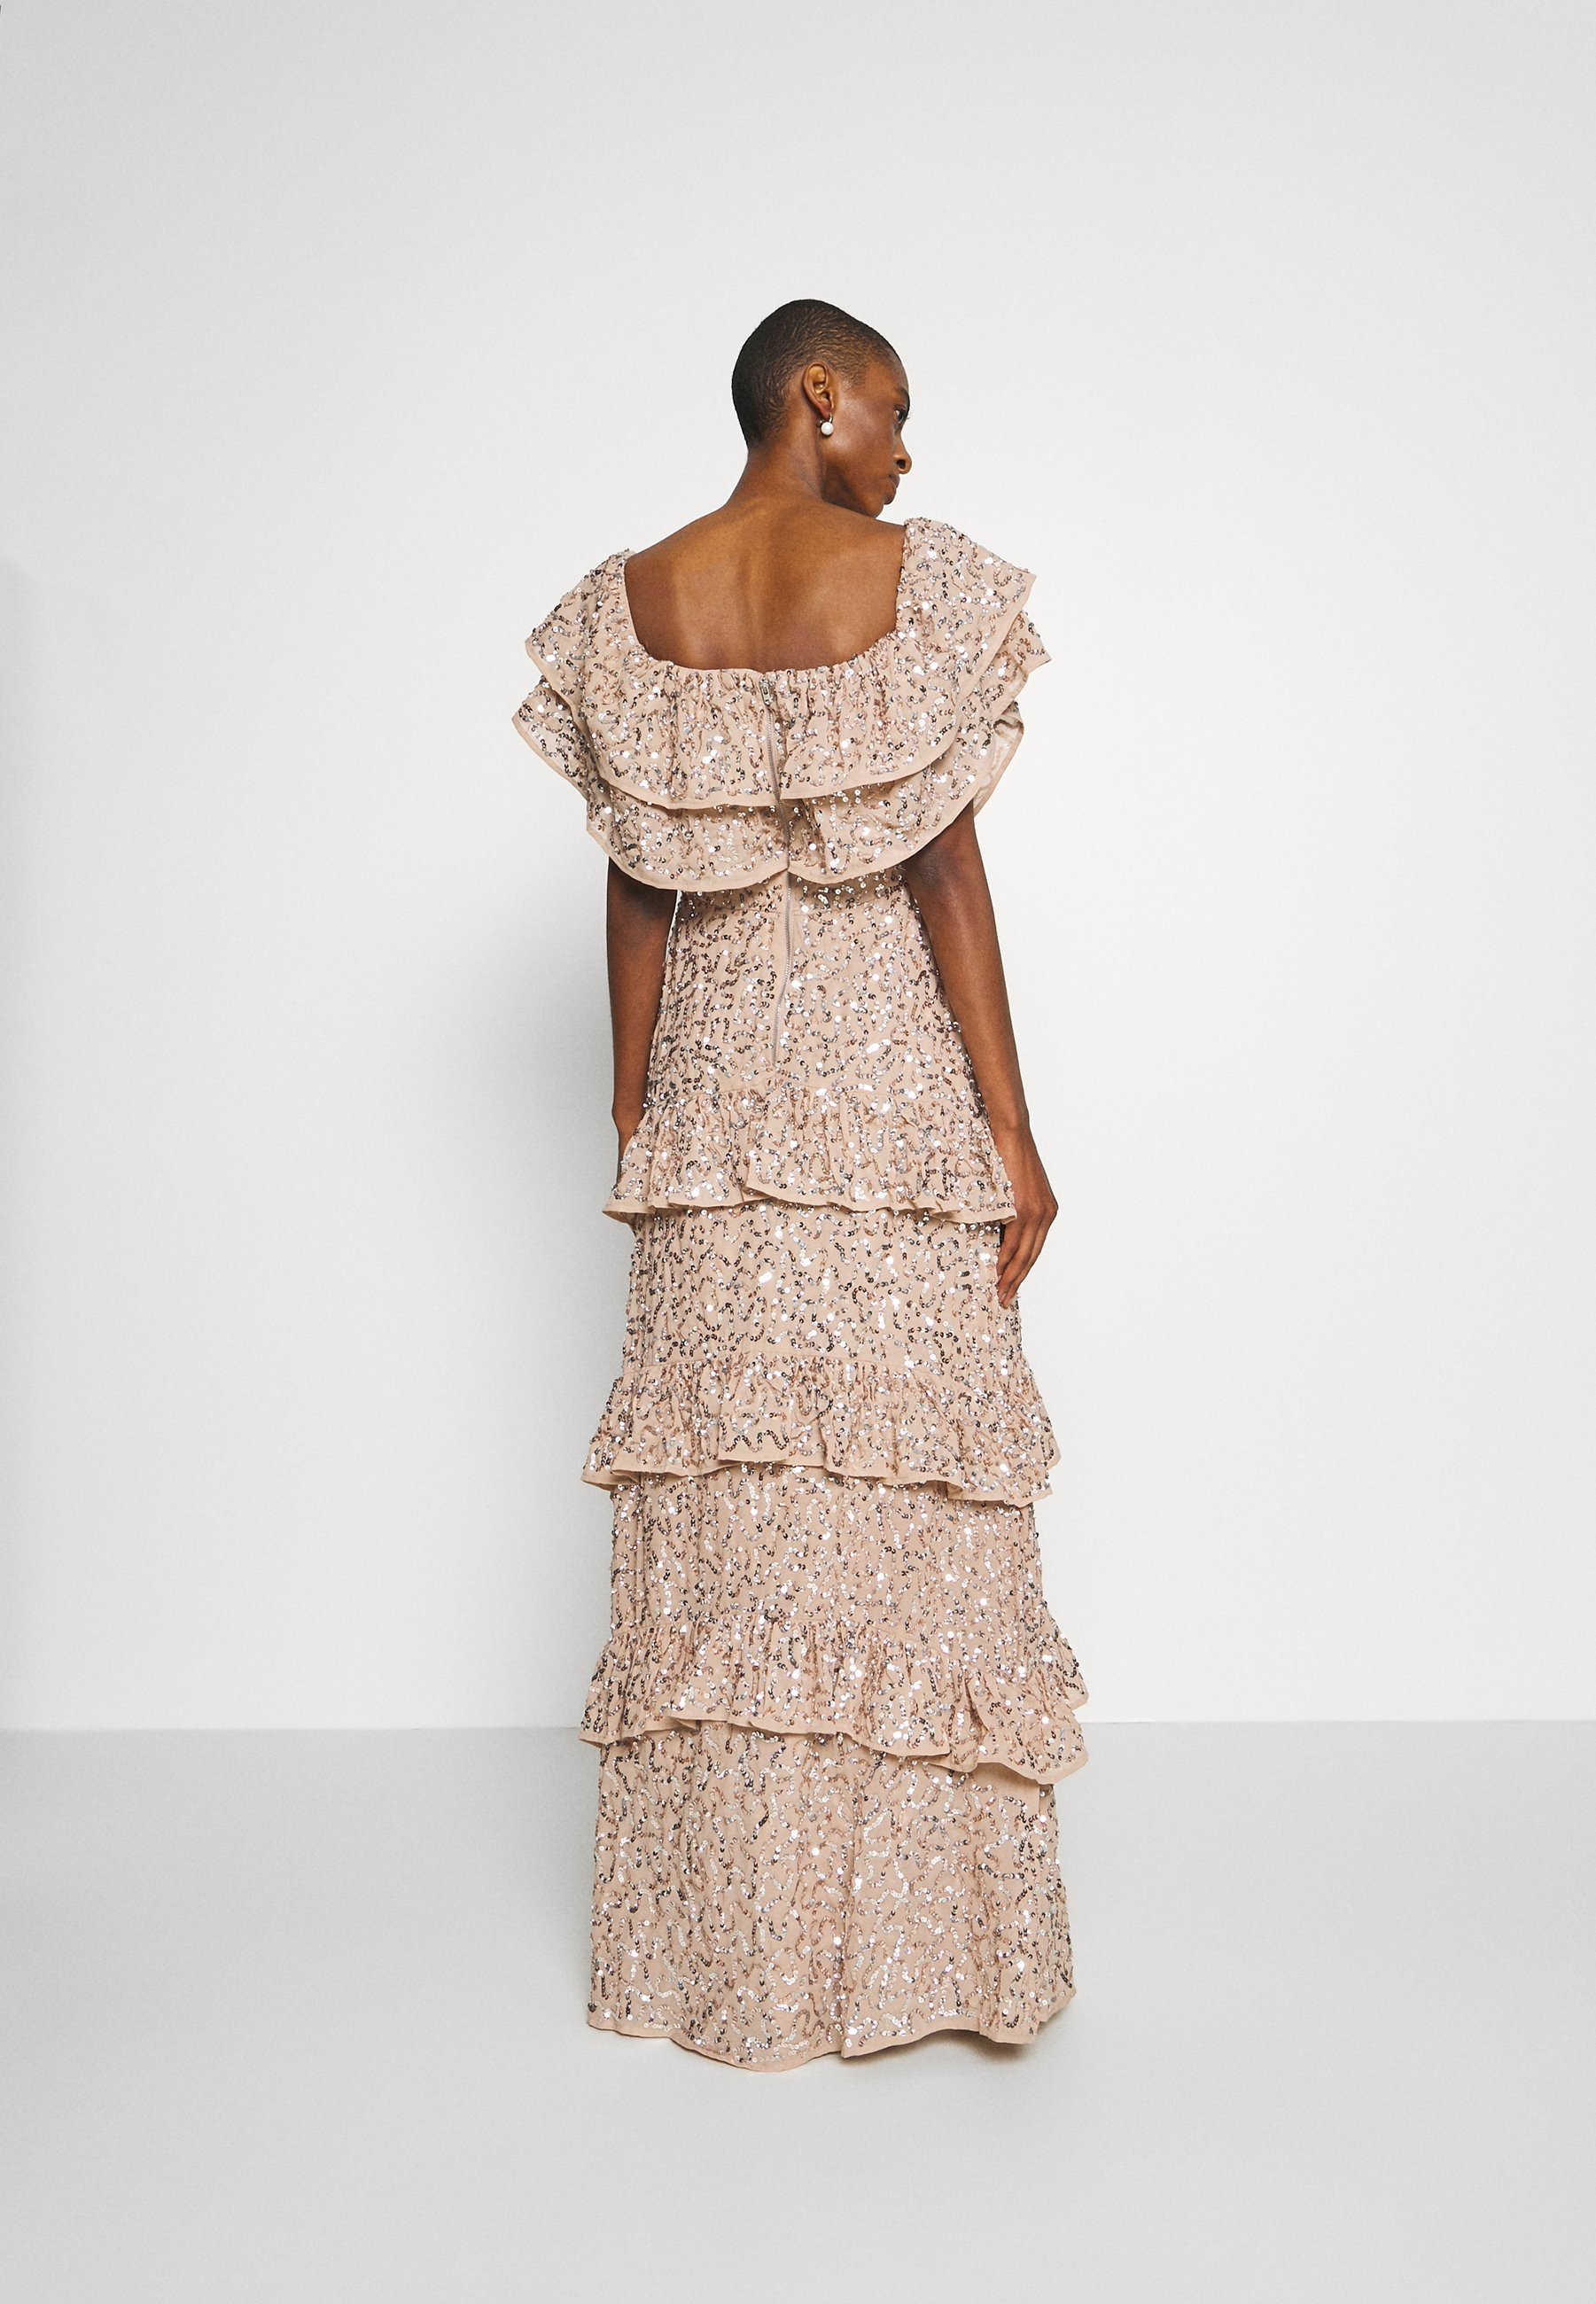 Maya Deluxe BARDOT ALL OVER SEQUIN MAXI DRESS WITH RUFFLES Ballkleid taupe blush/taupe